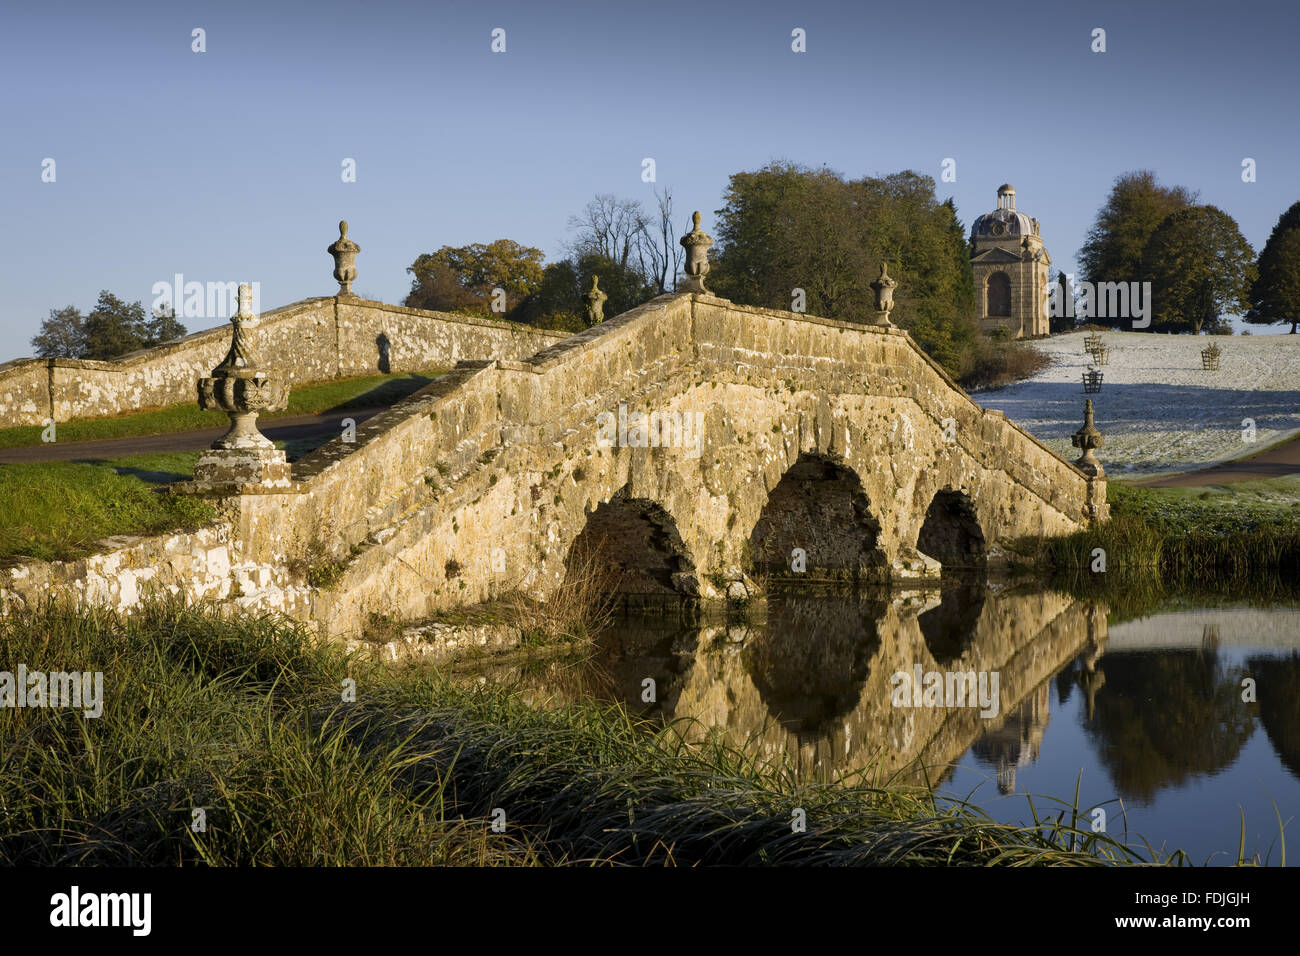 The Oxford Bridge with urns and rustic stonework on a frosty day at Stowe Landscape Gardens, Buckinghamshire. Stock Photo